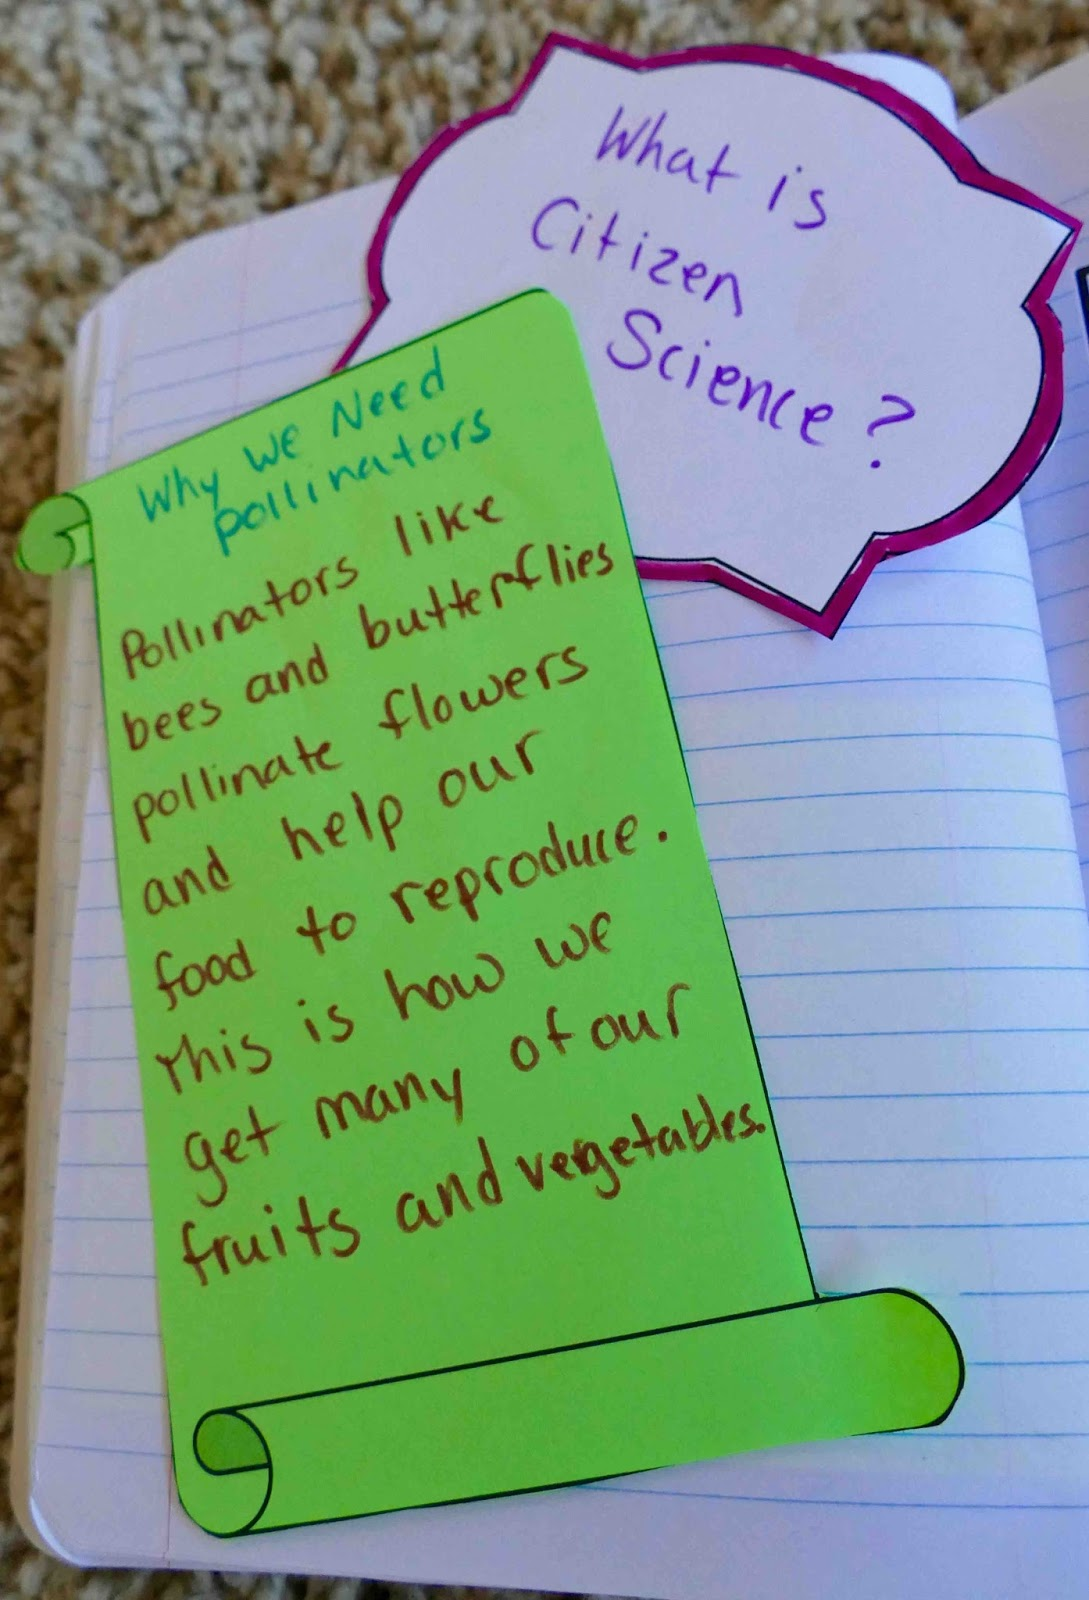 Teaching Science With Lynda Interactive Notebook Ideas For Fun Squishy Circuits Third Inserts Should Be Creative But Not Take Up So Much Time That All The Learning Is About Making Elaborate Fold Older Kids Can Of Course Do More